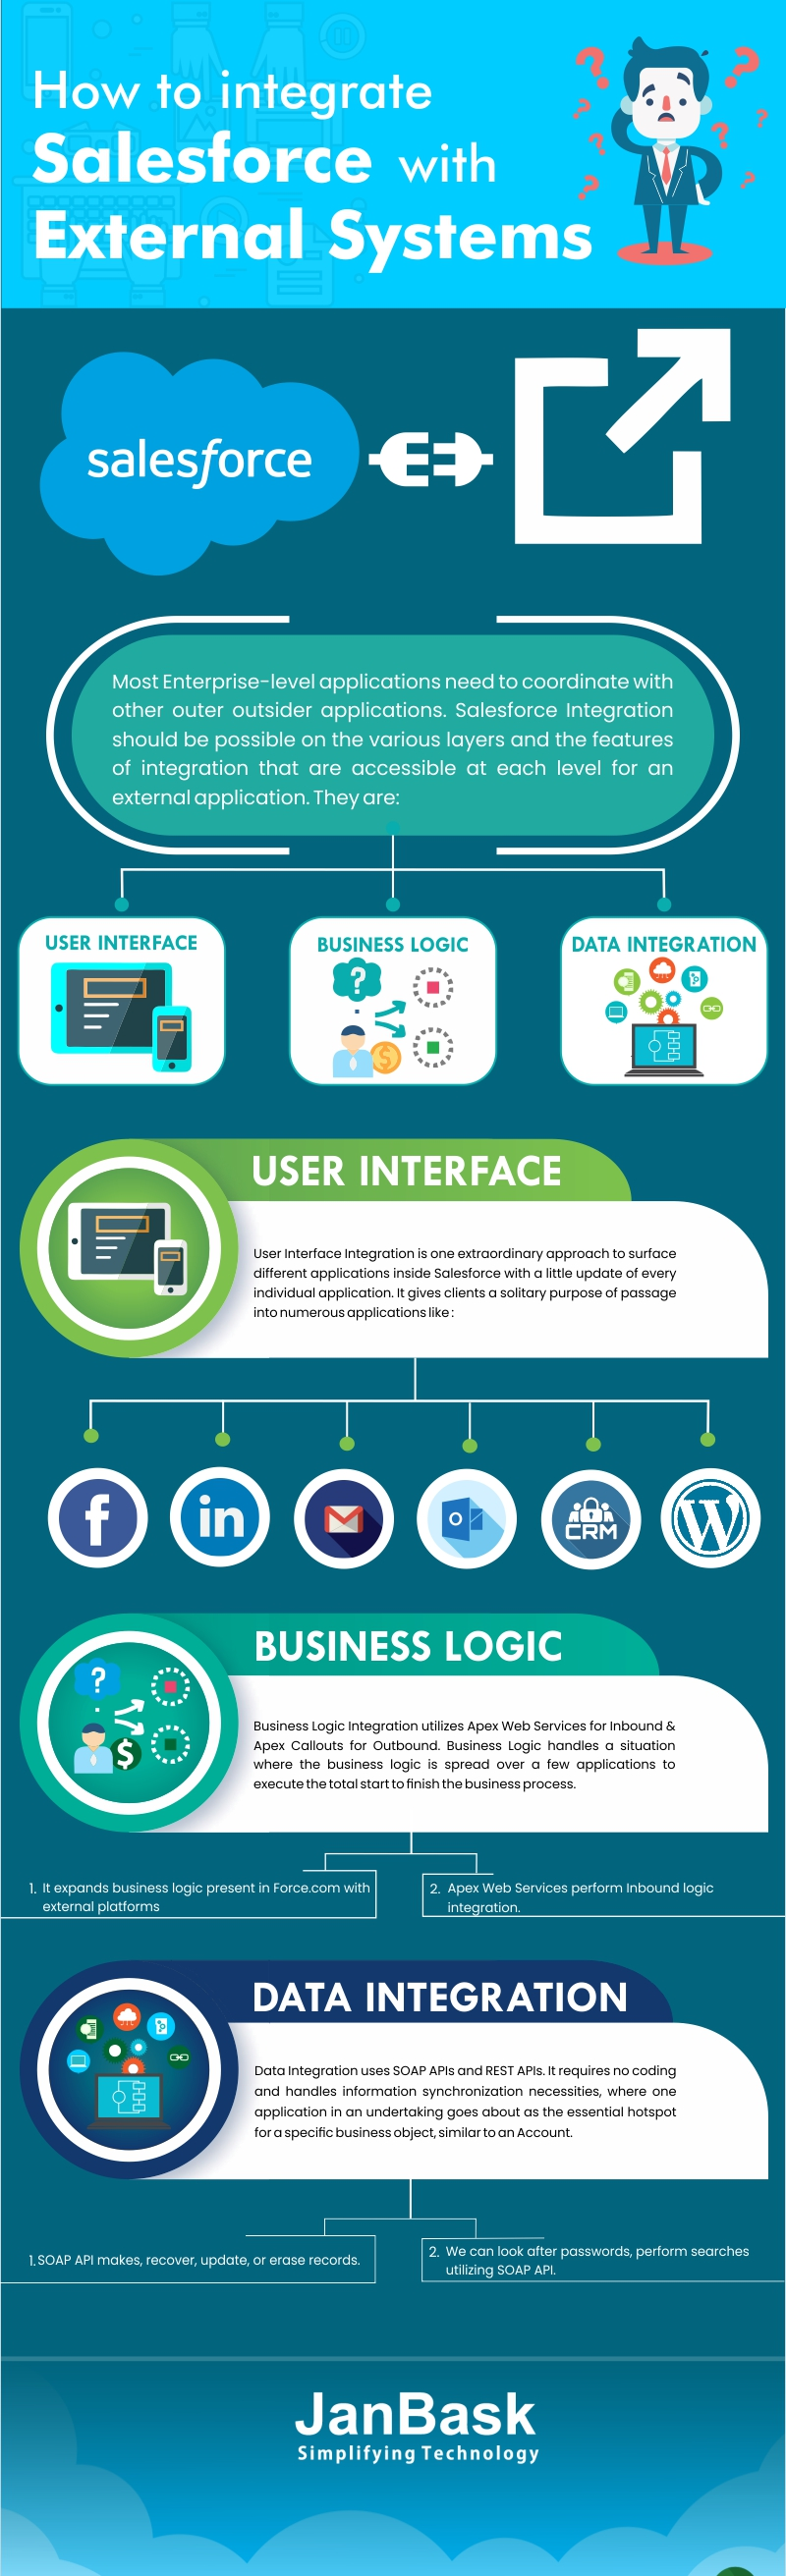 Infographic How to Integrate Salesforce with External Systems